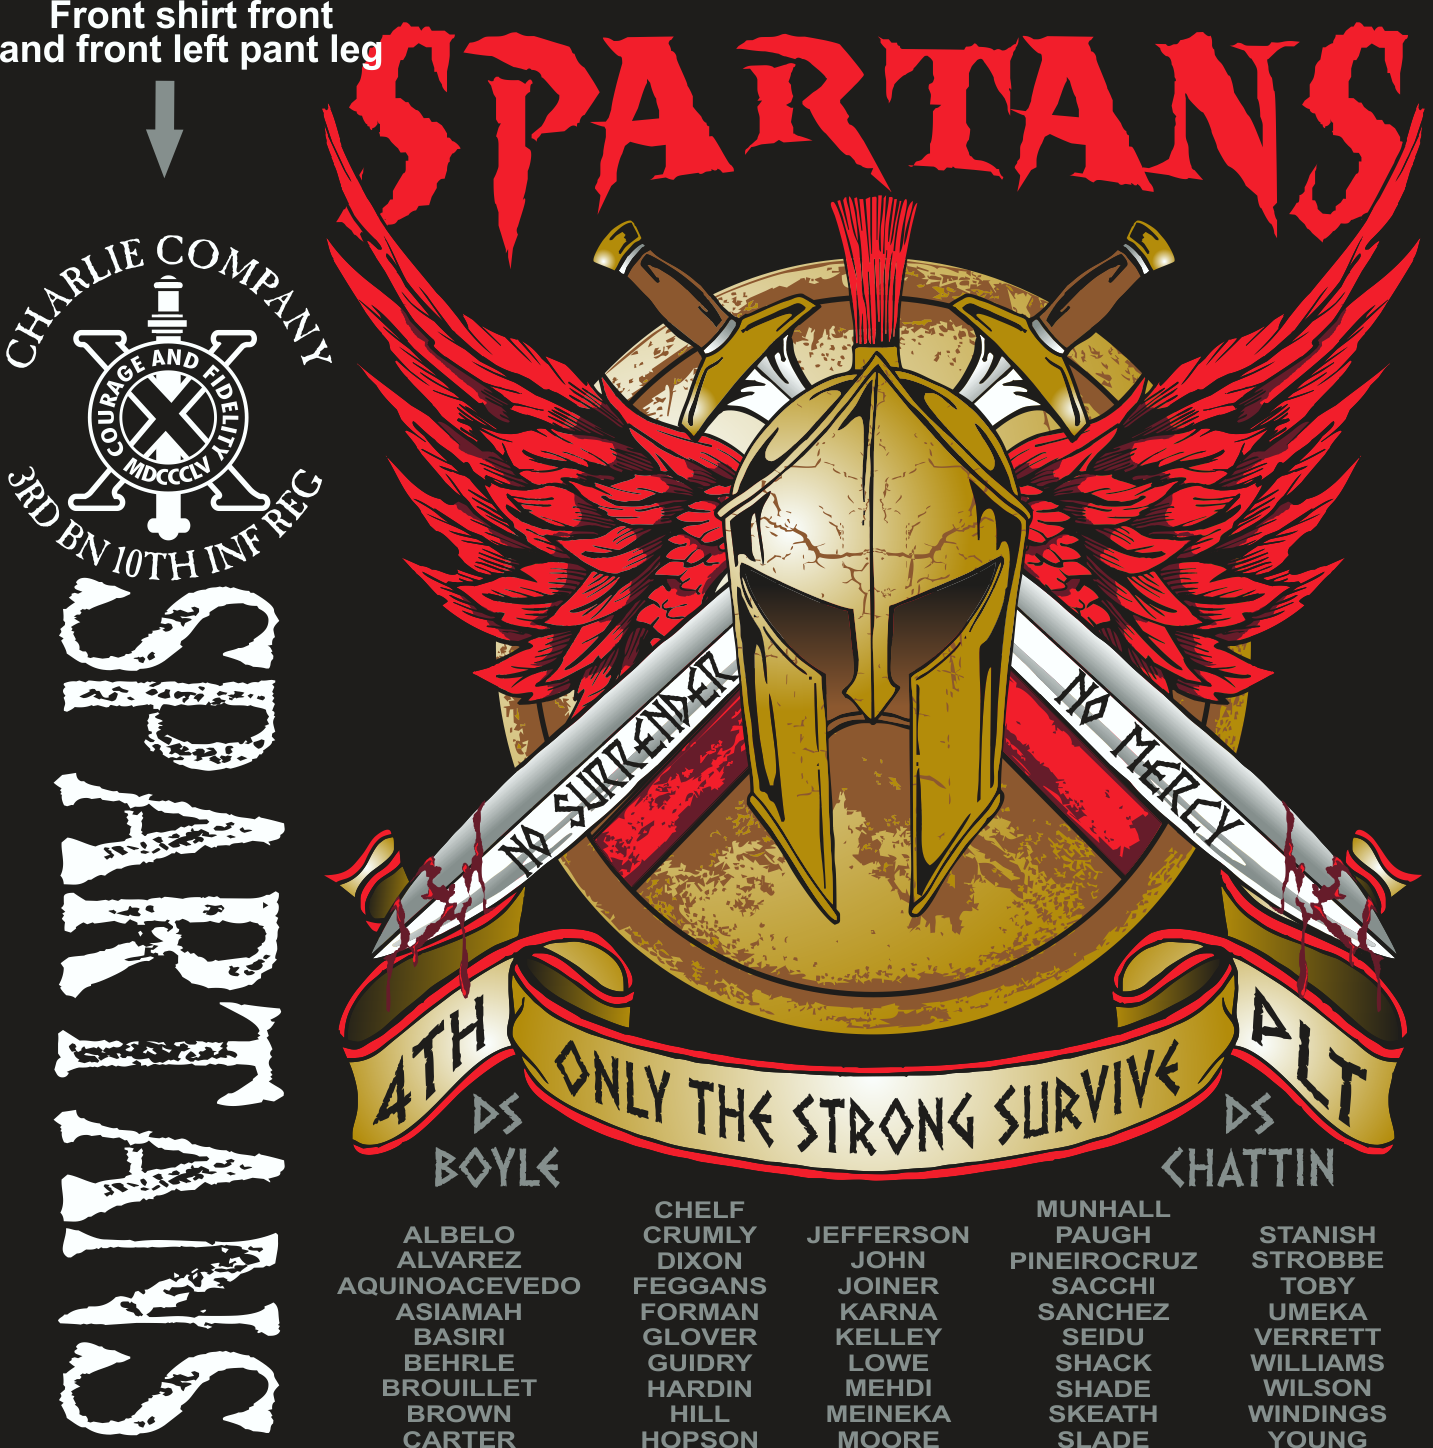 CHARLIE 3-10 SPARTANS Graduating Day 4-23-2015 digital